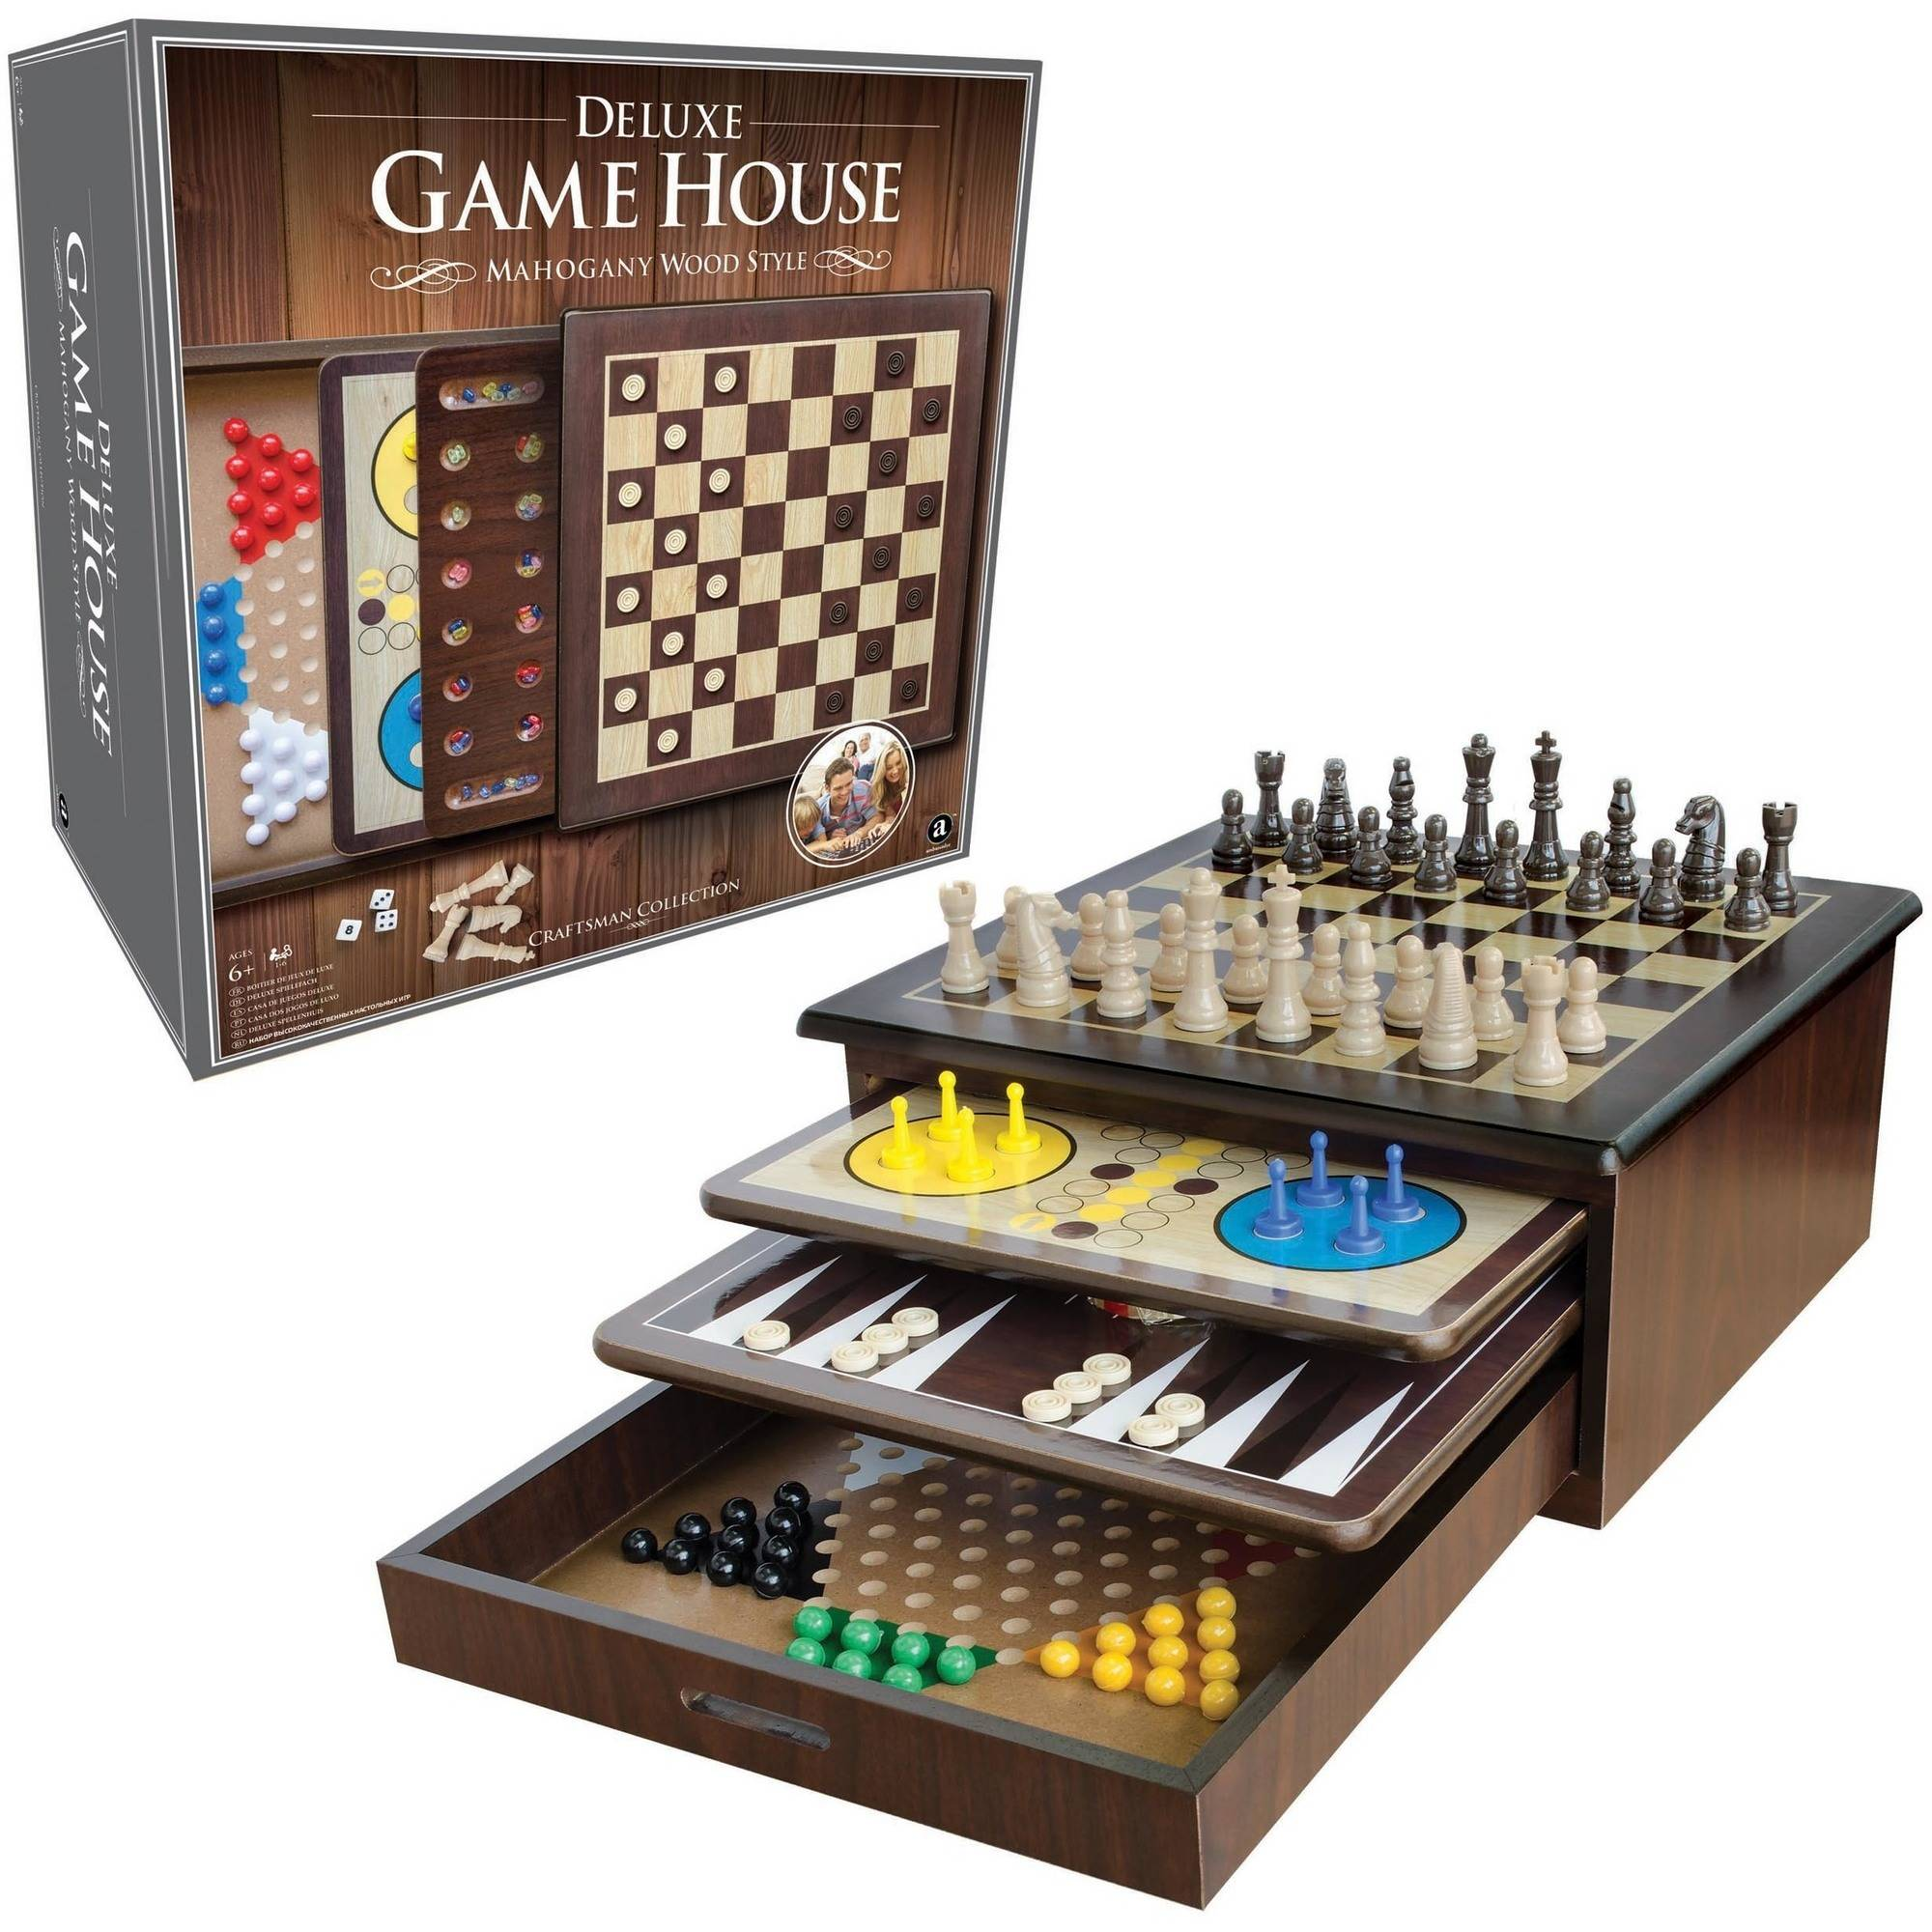 Craftsman Deluxe Game House